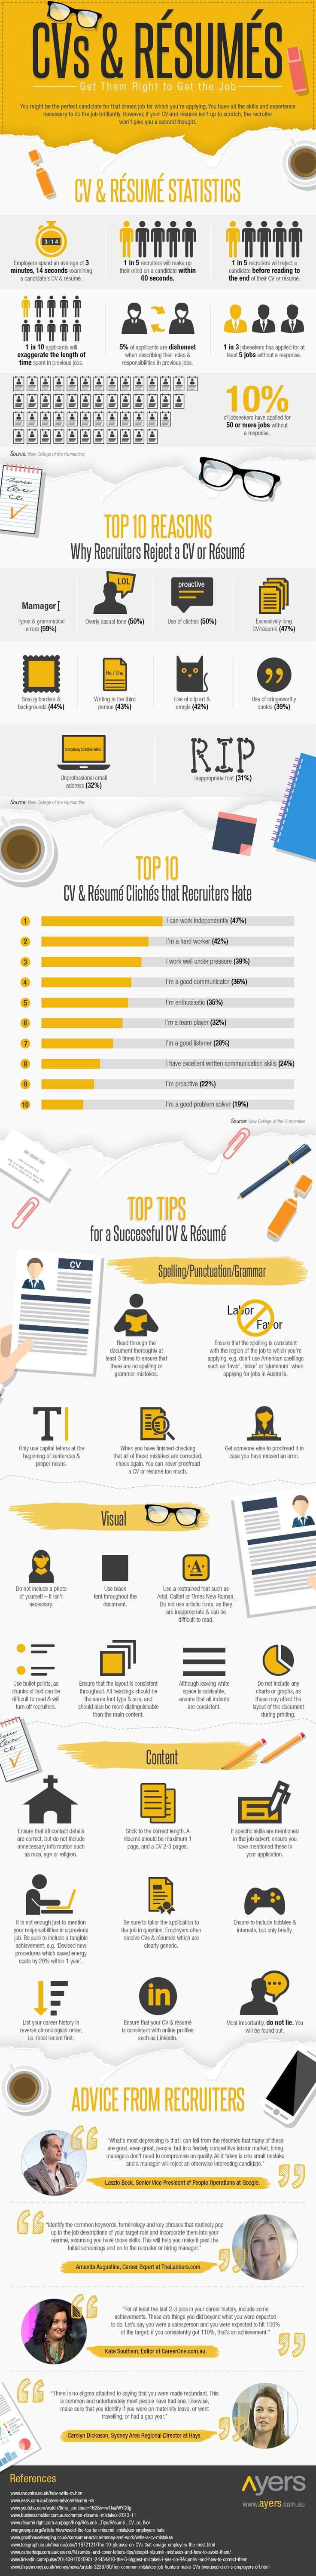 your resume has 3 minutes 14 seconds to make a good expression nice resume desing - Tips On A Good Resume